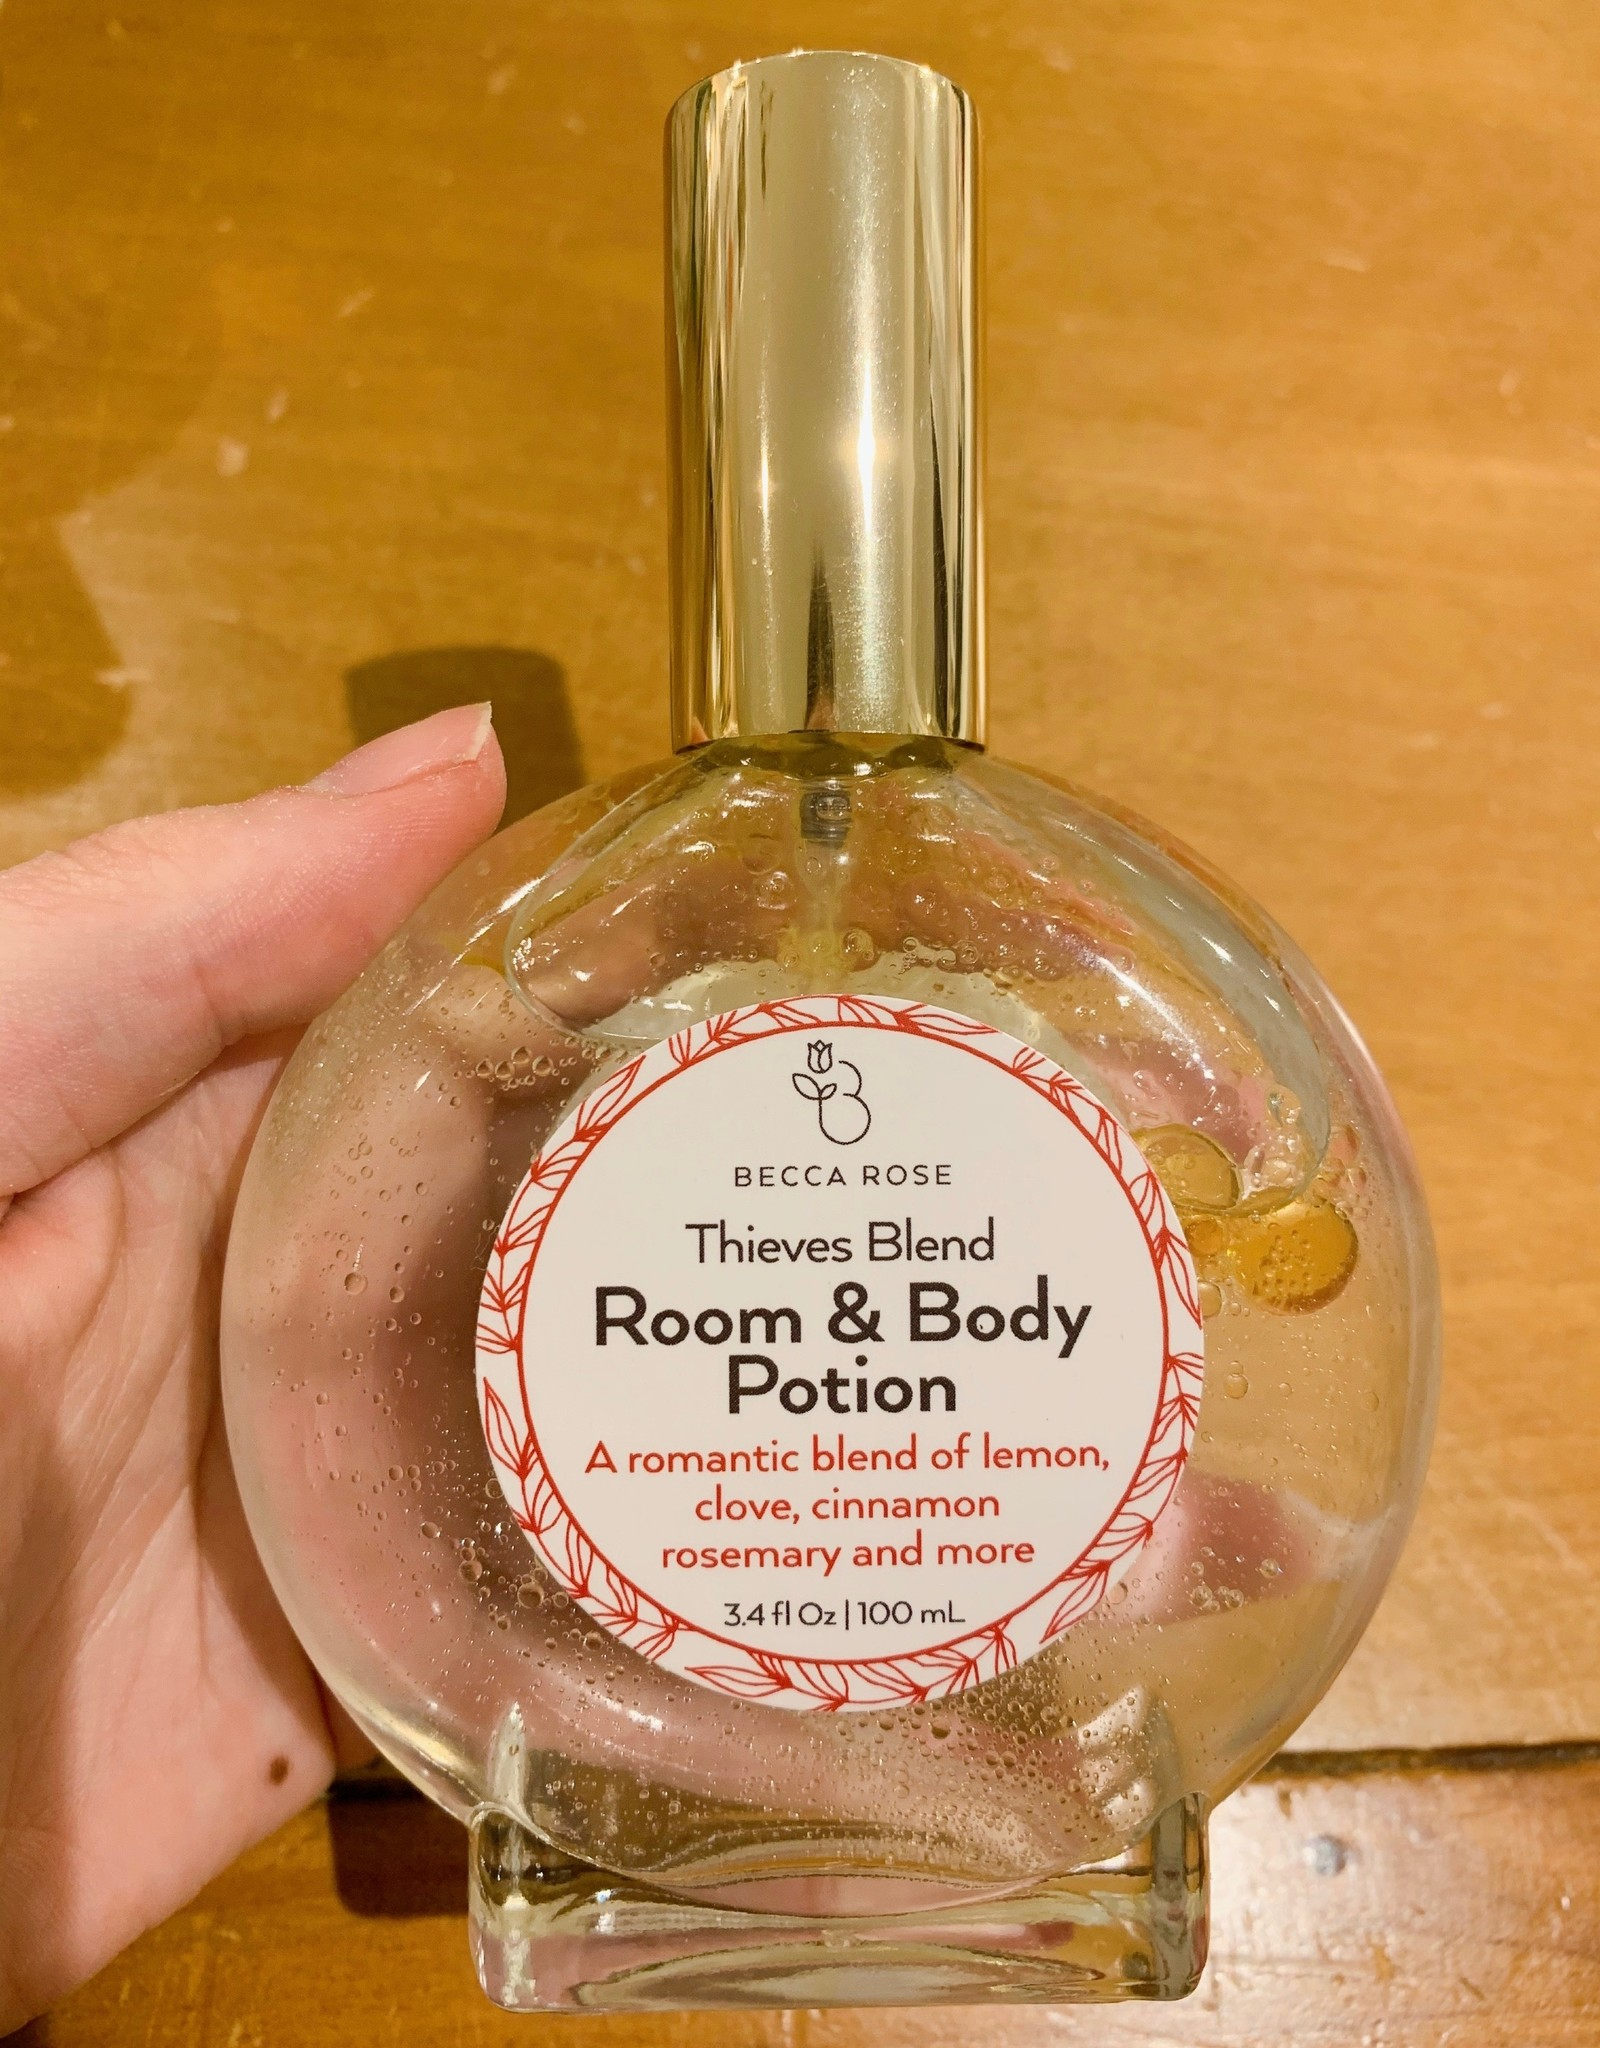 Becca Rose Room & Body Potion: Thieves Blend